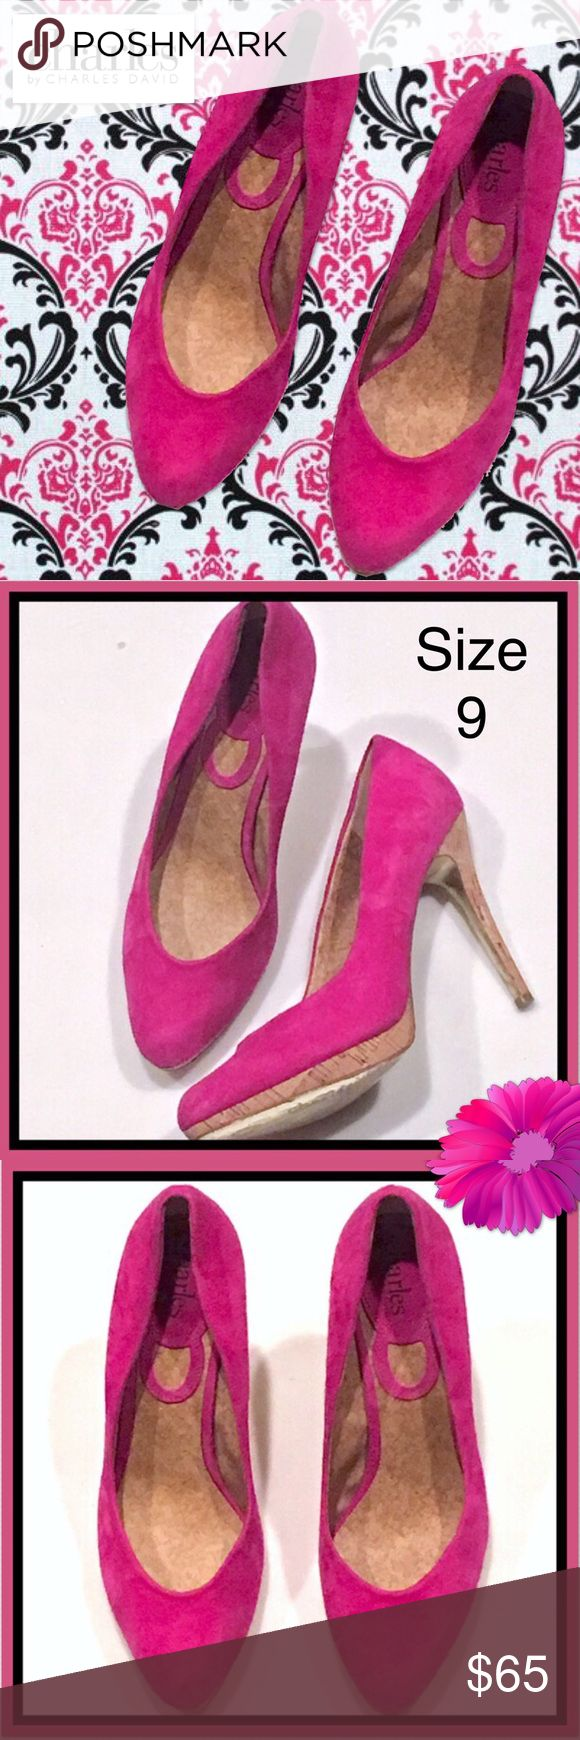 """CHARLES DAVID Hot 💝 Pink Suede Stilettos ~ Sz 9 Gorgeous 💝hot pink💝 suede stilettos from CHARLES Charles David, size 9.  Stiletto heels are made from cork and they measure 4 1/2"""" high.  Excellent clean condition. 💕💝 Charles David Shoes Heels"""